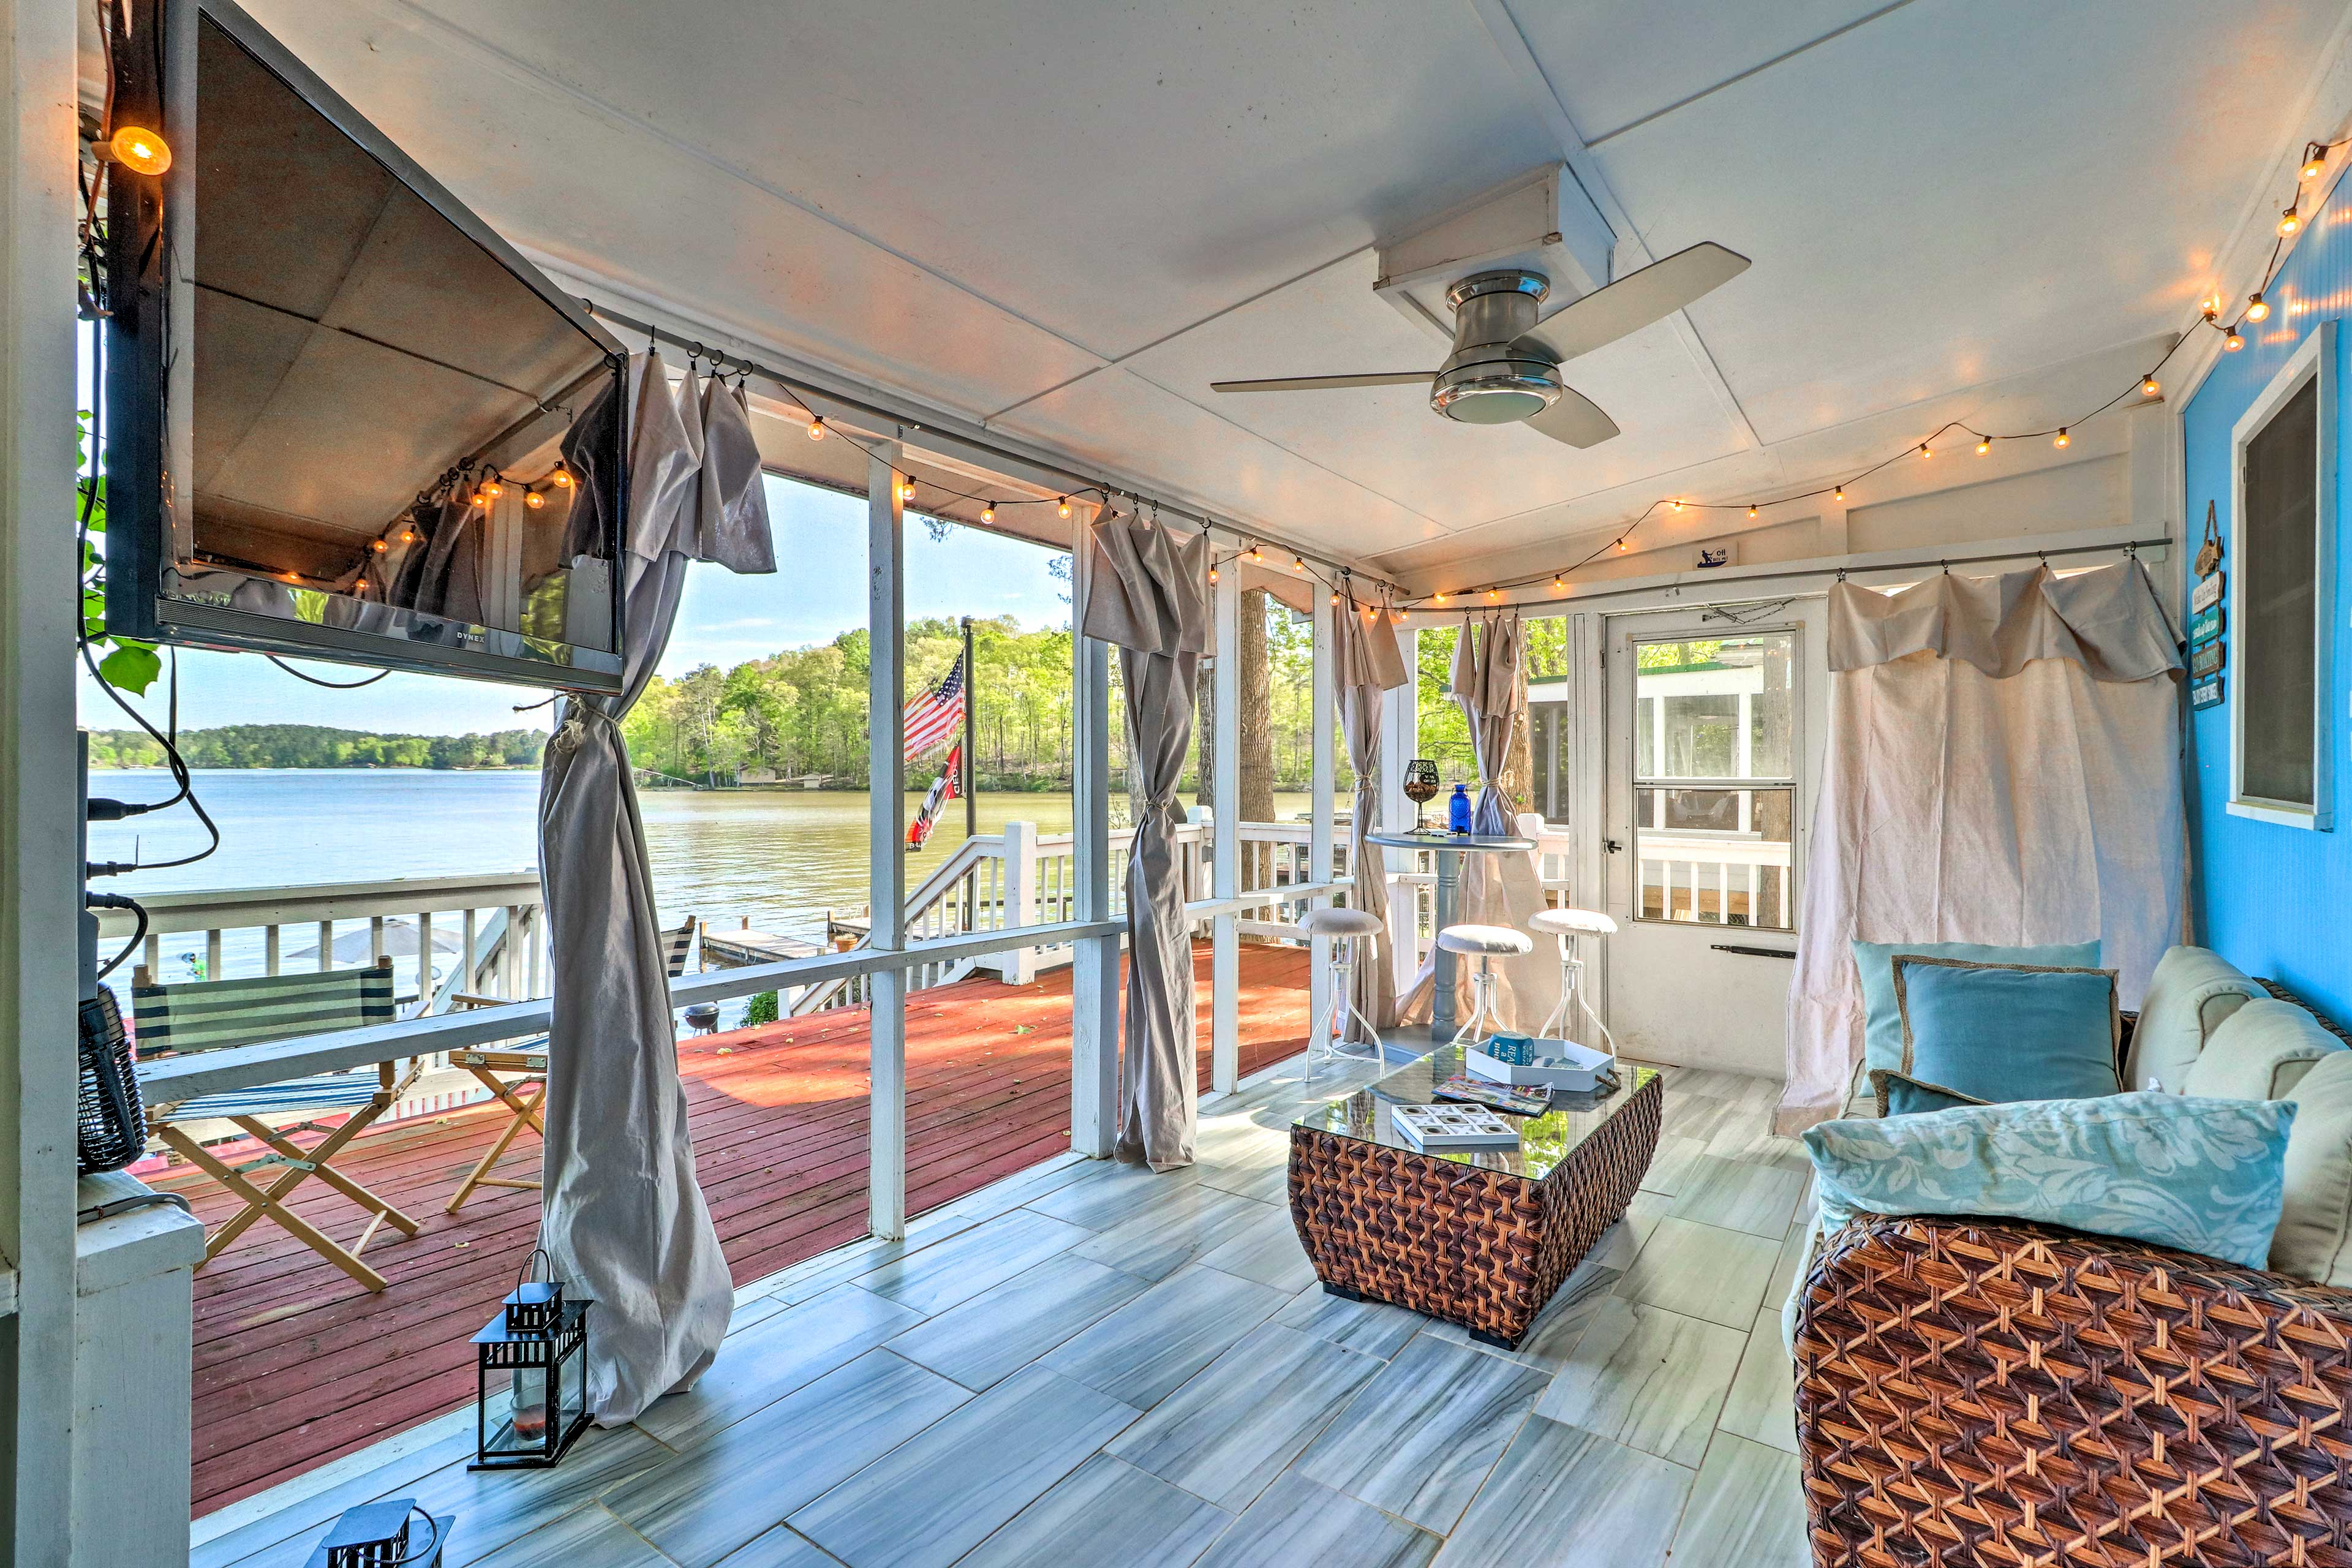 Lounge in the screened porch to watch TV or take in the views.